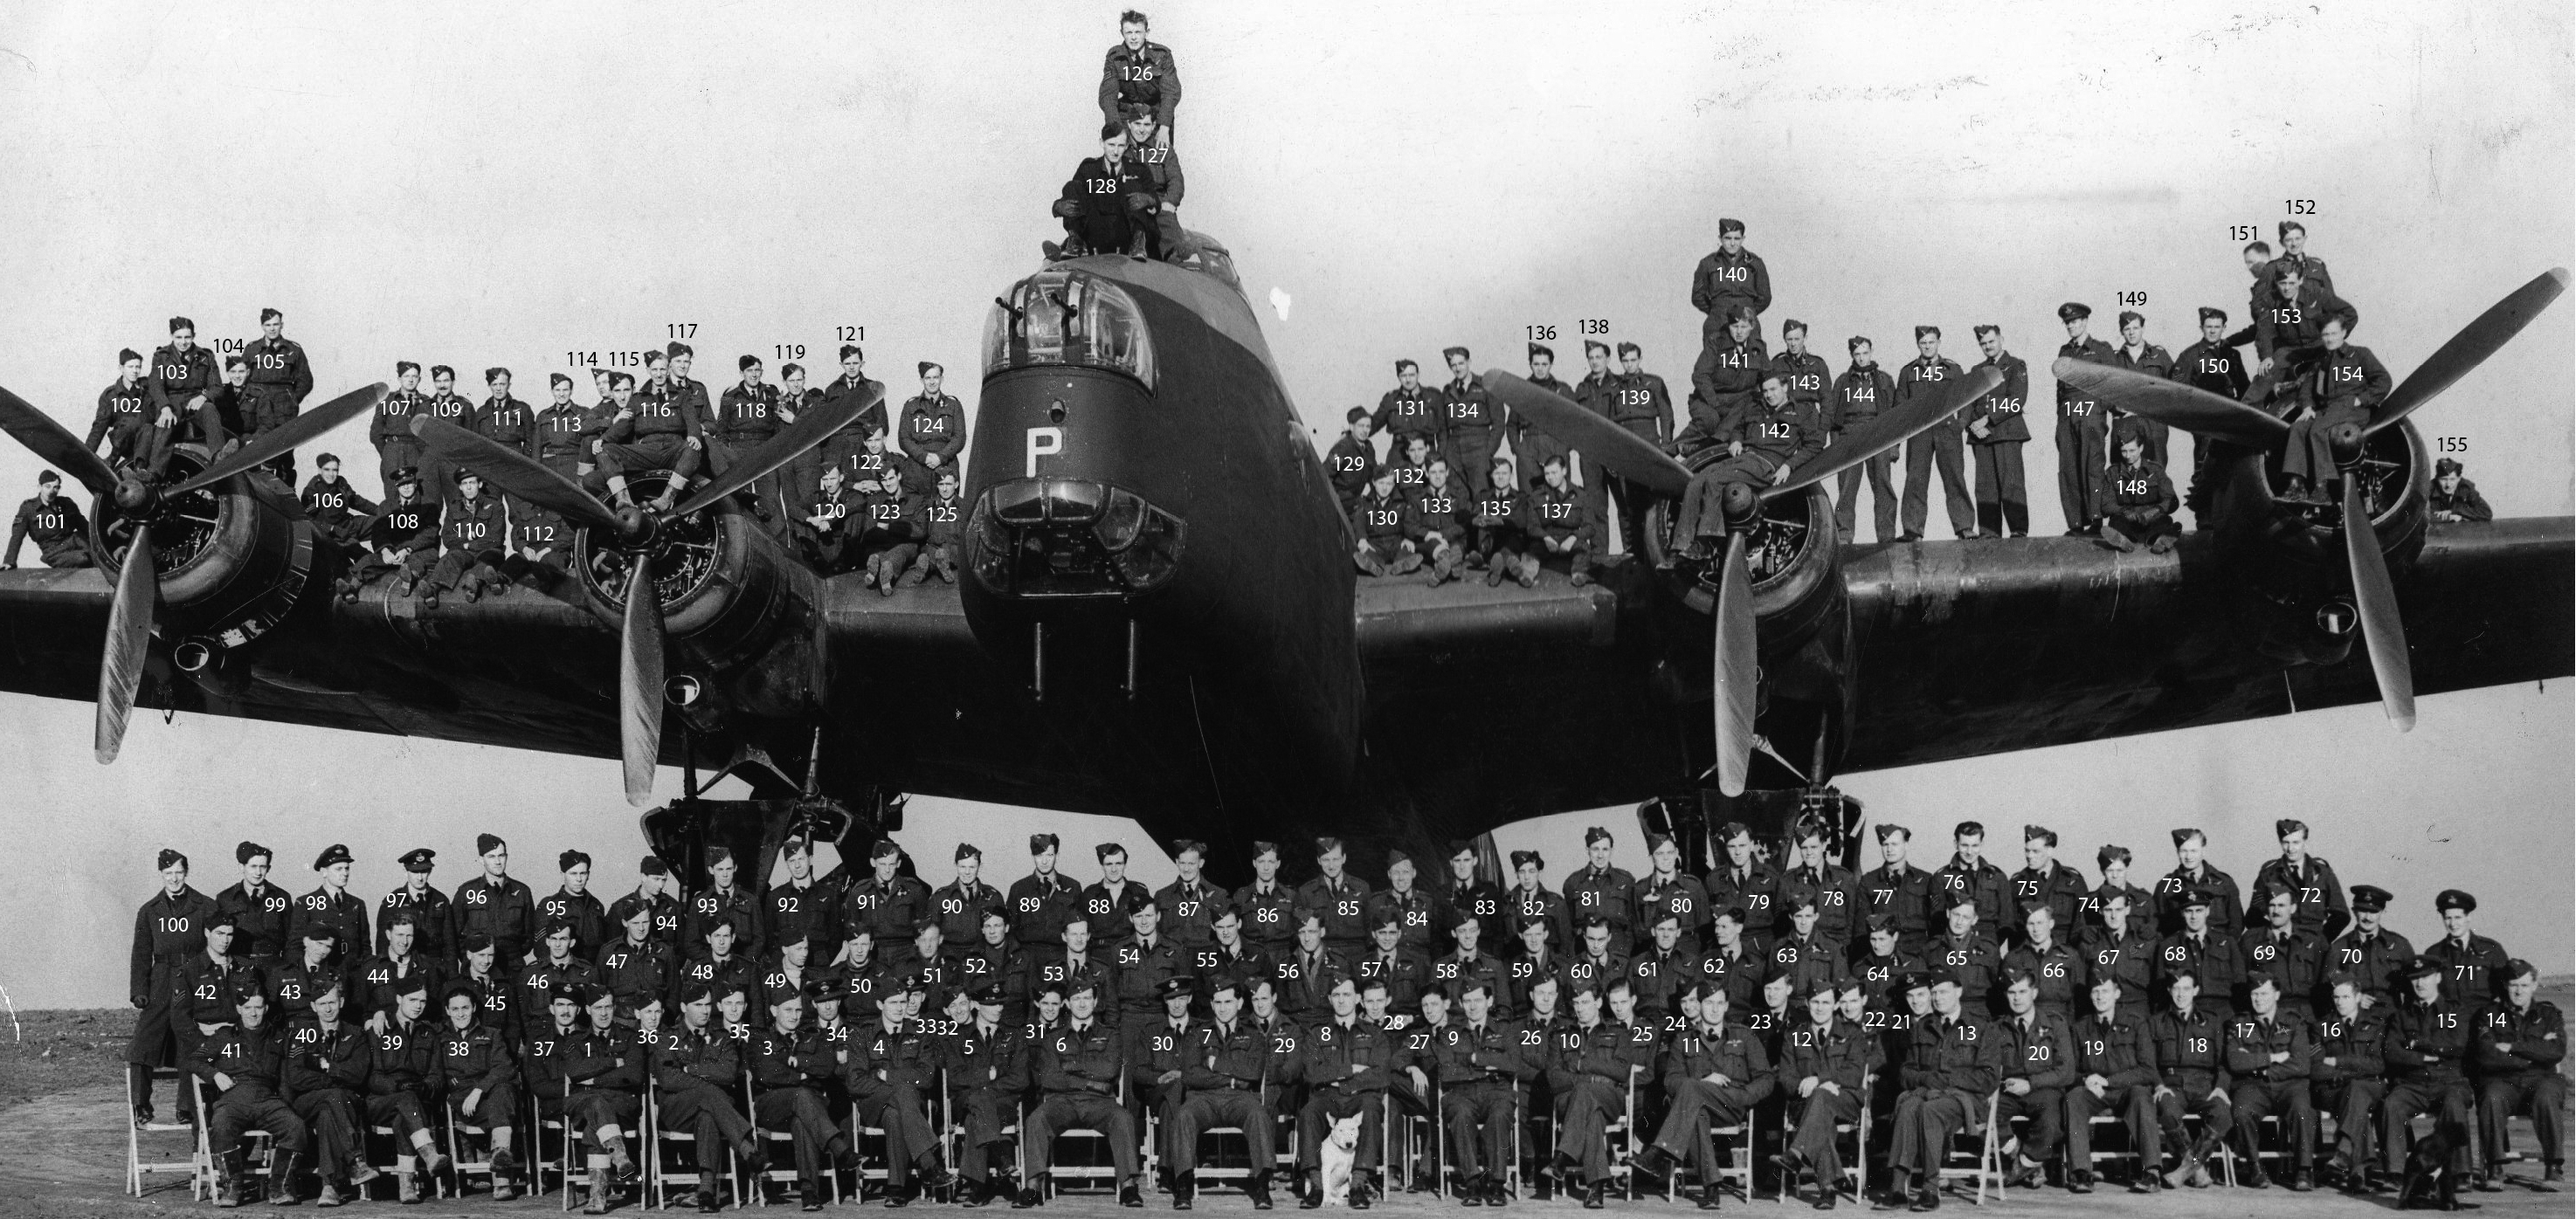 Full Squadron 1943 NUMBERED